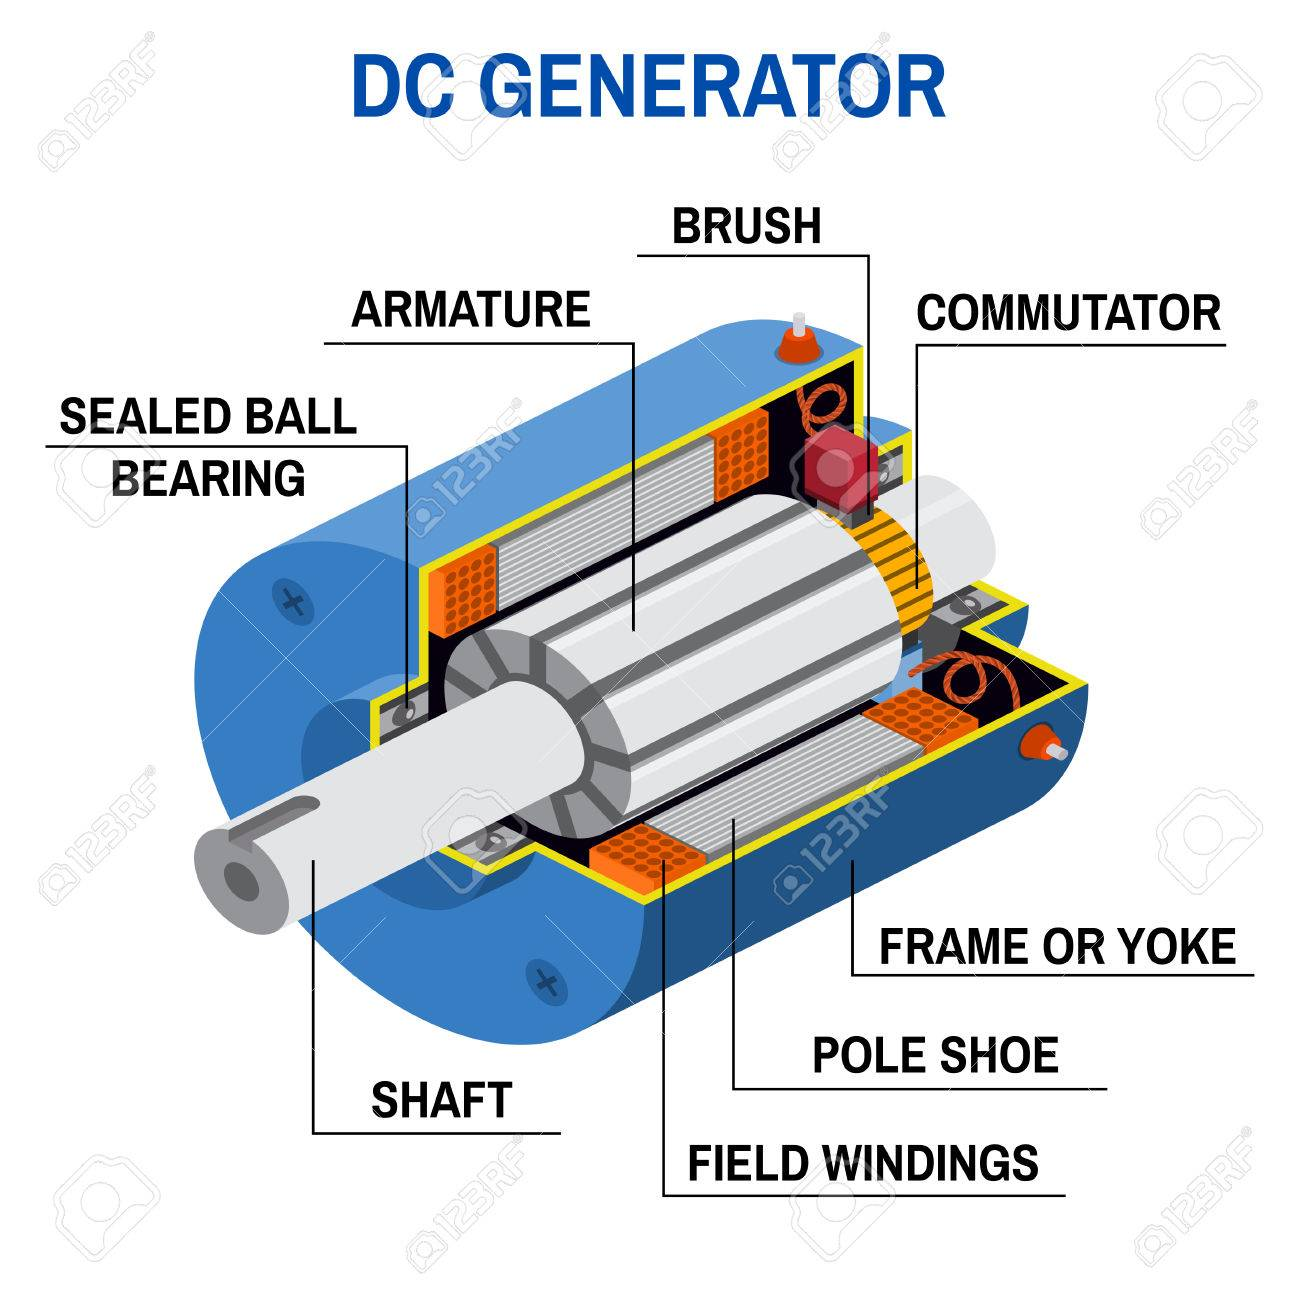 75177471 dc generator cross diagram dc generator diagram data wiring diagram blog